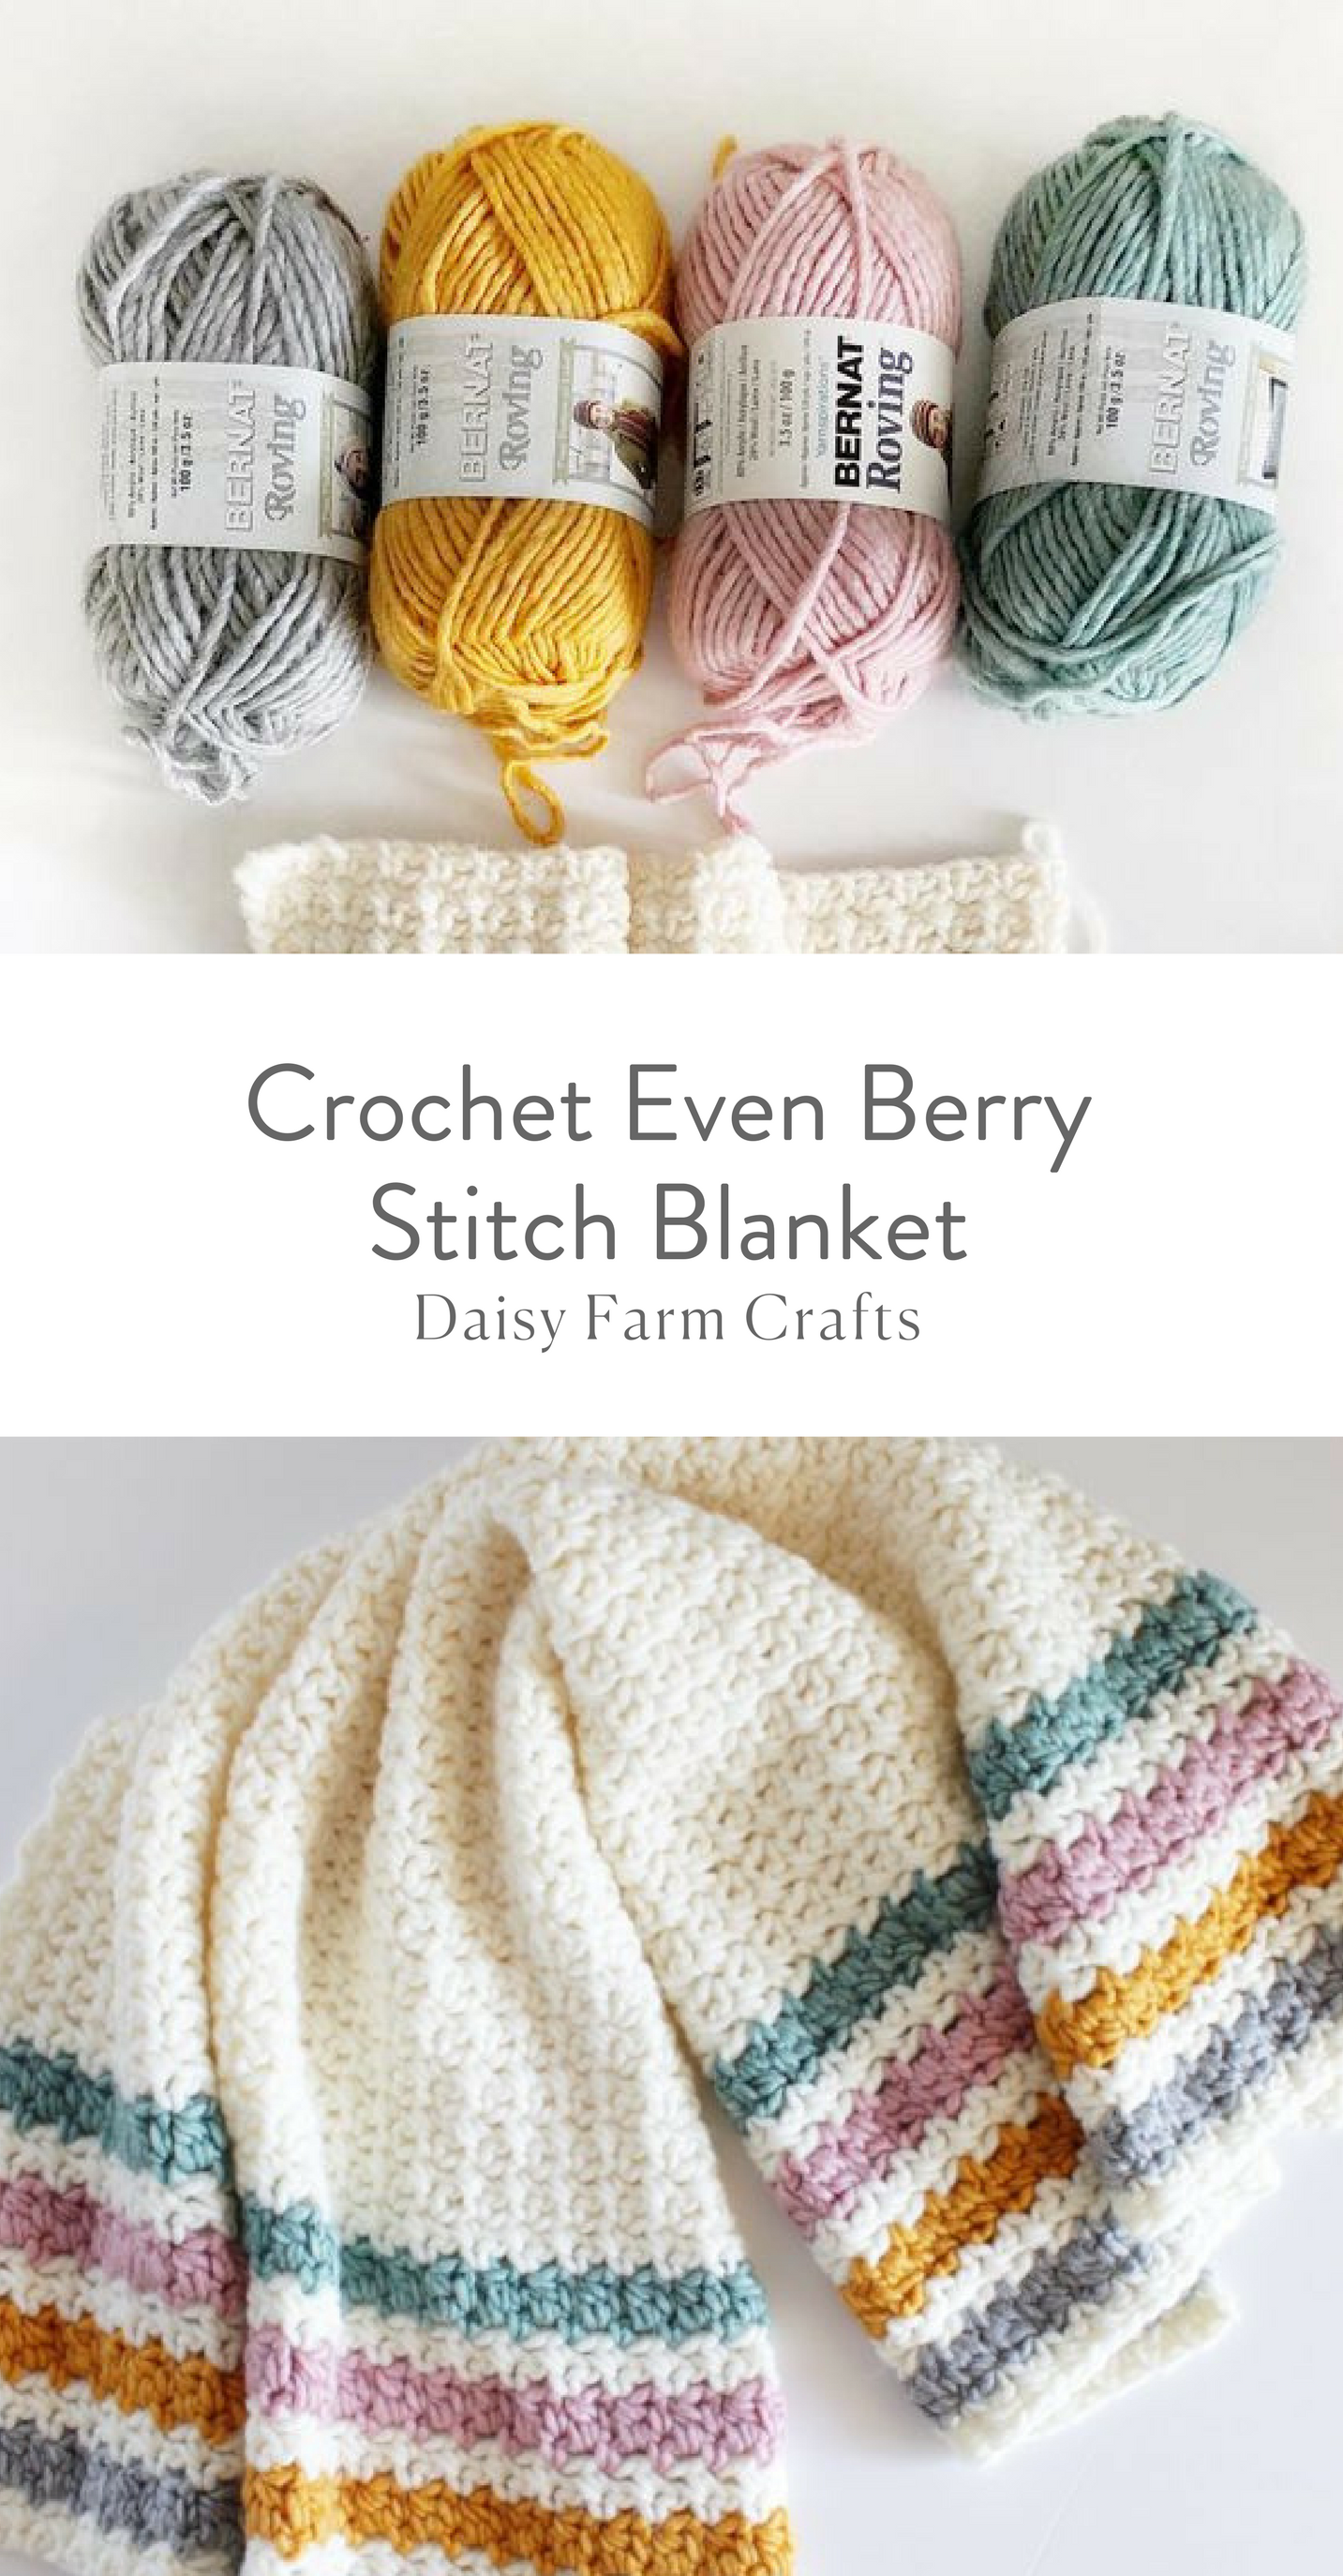 Free Pattern - Crochet Even Berry Stitch Blanket | Knitting and ...